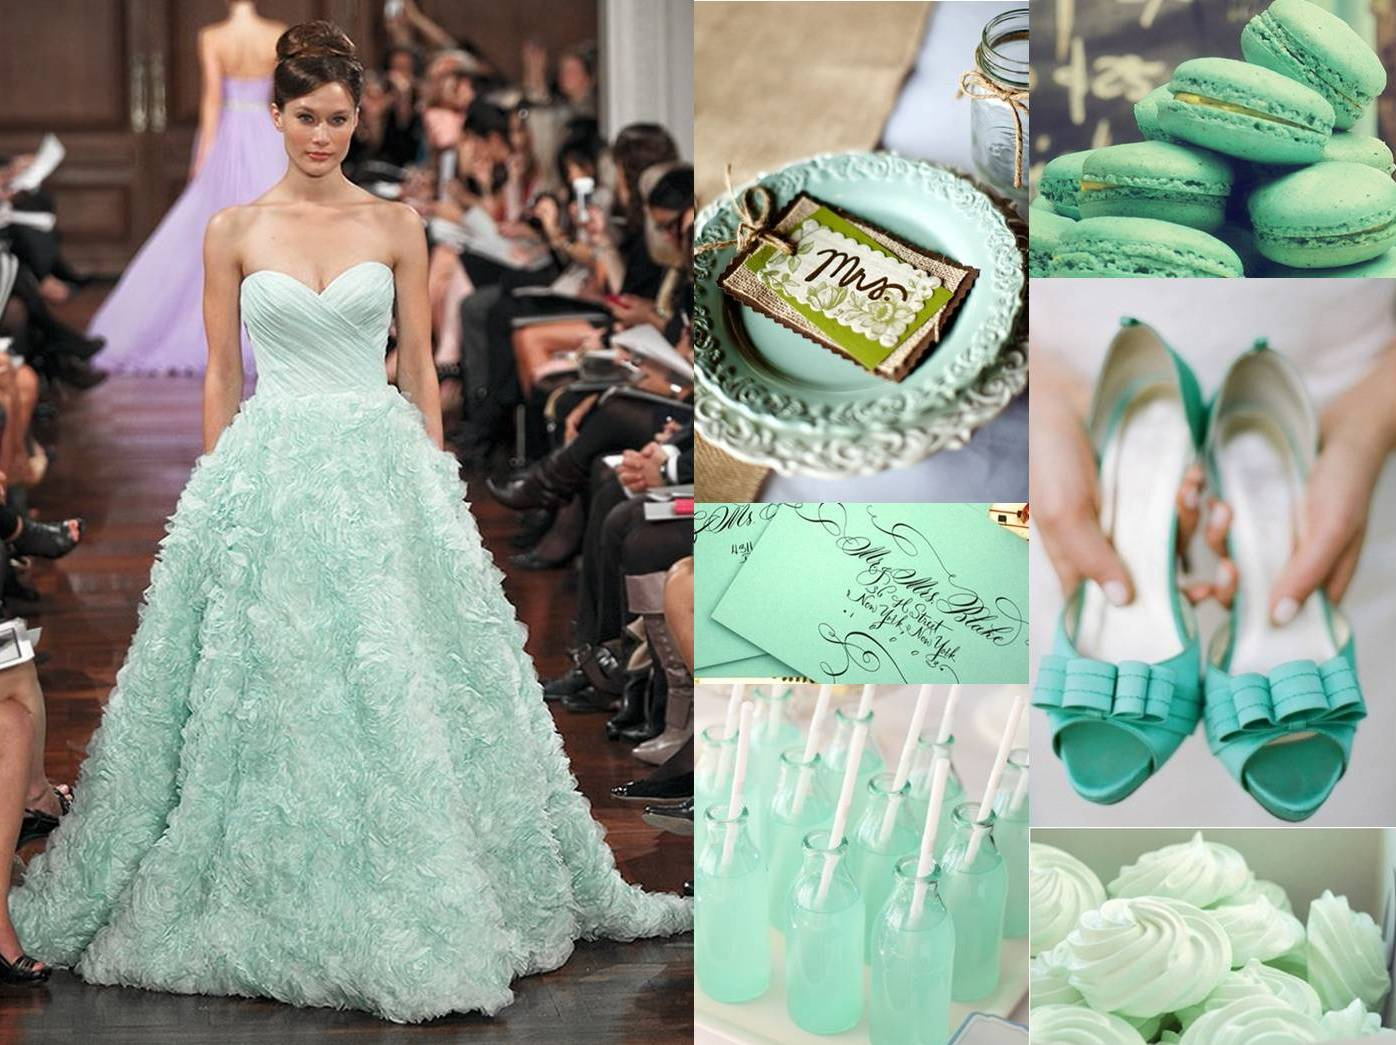 2013 Weddings Trends #1: Mint Color Everywhere | Weddings On The Wallpaper